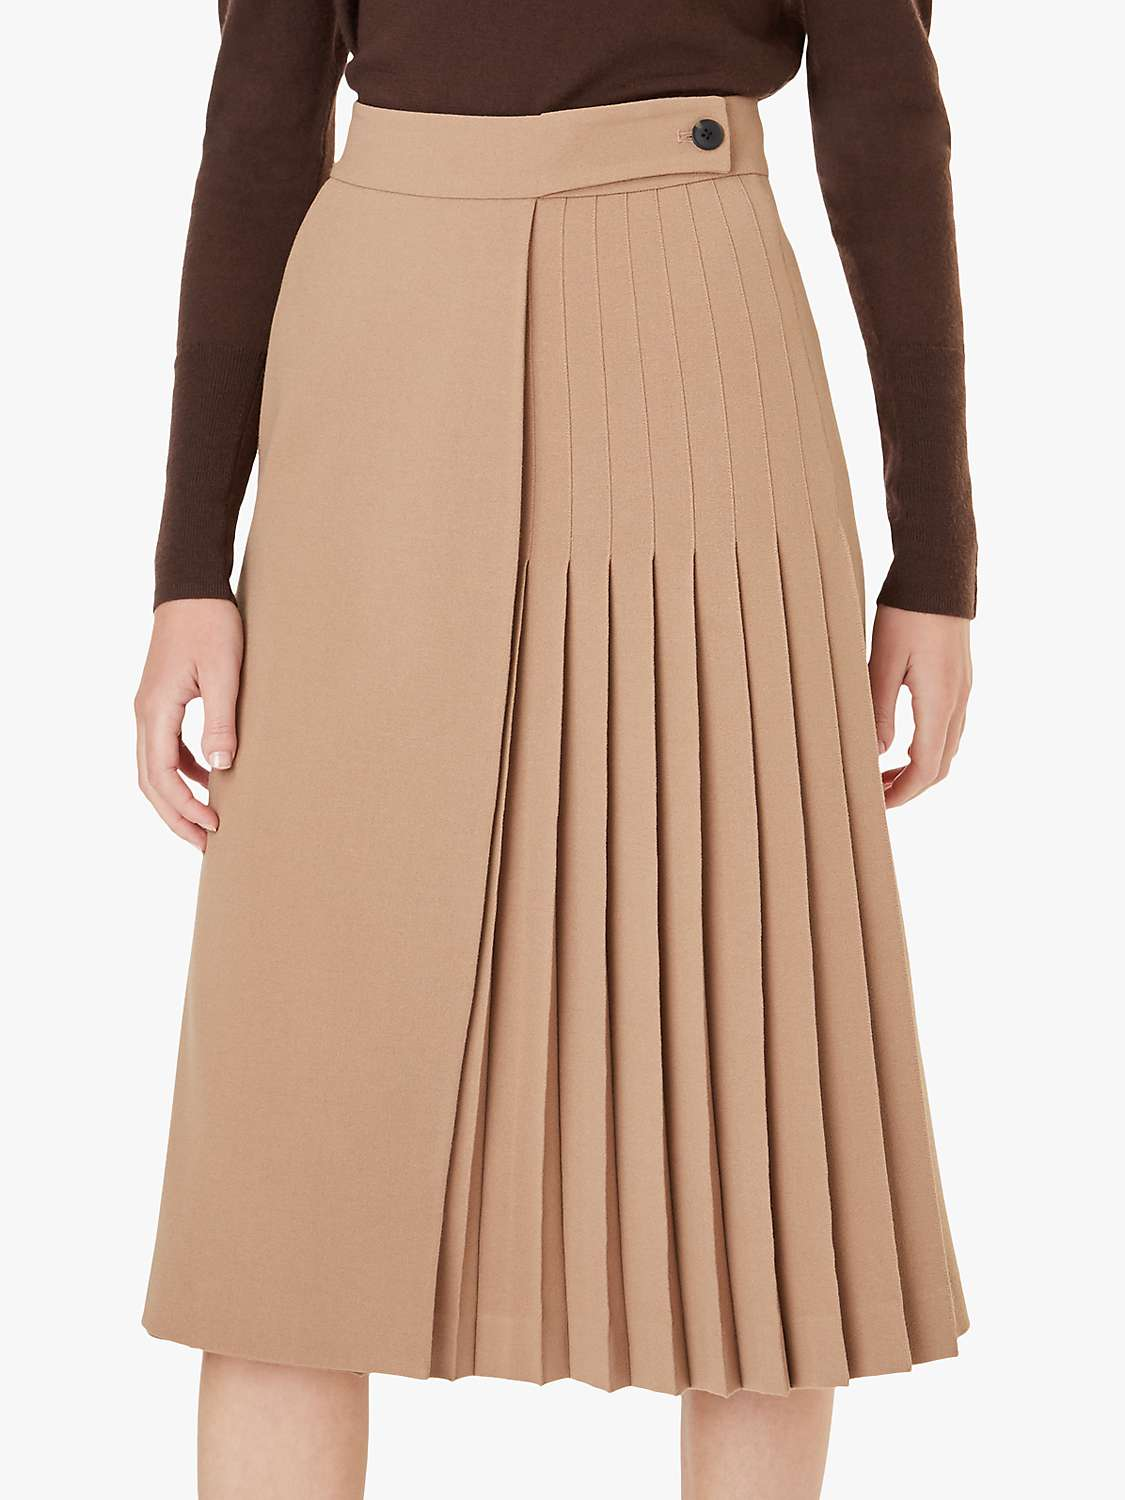 Hobbs Piper Pleated Skirt, Camel by Hobbs